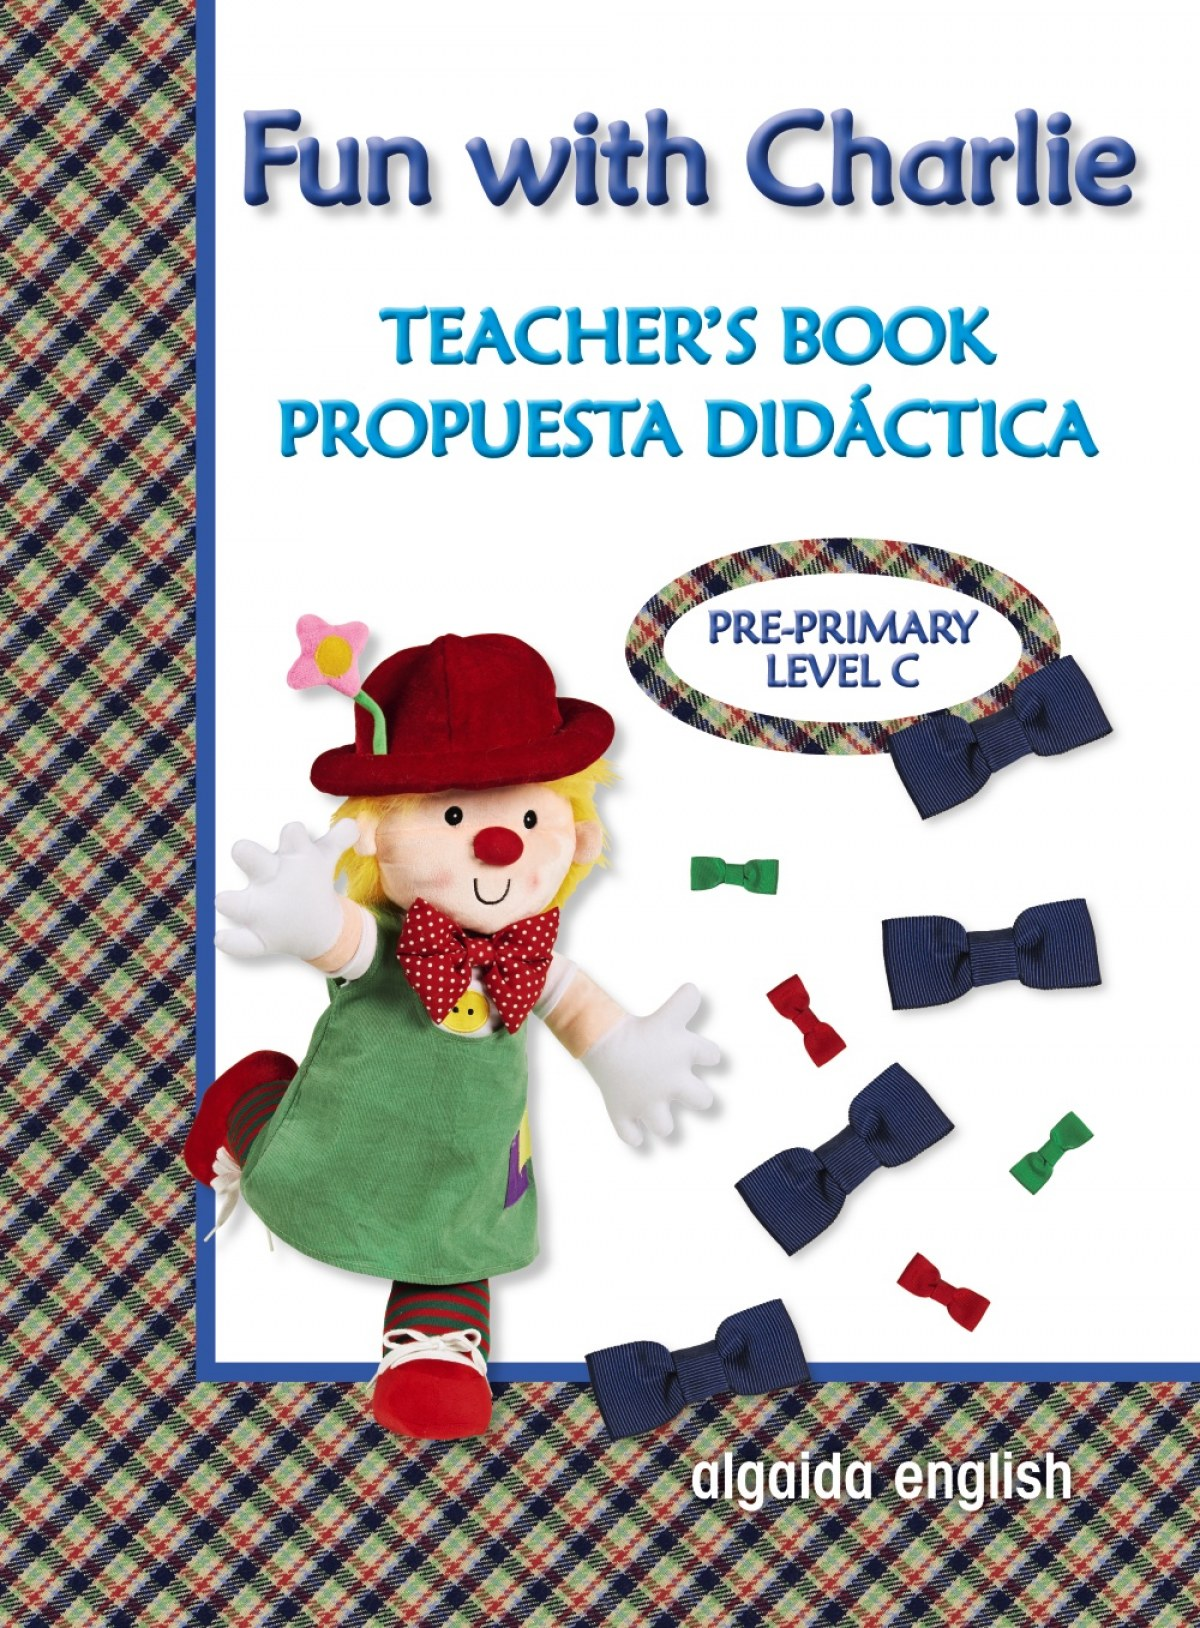 (TEACHER).FUN WITH CHARLIE.(PROPUESTA DIDACTICA)